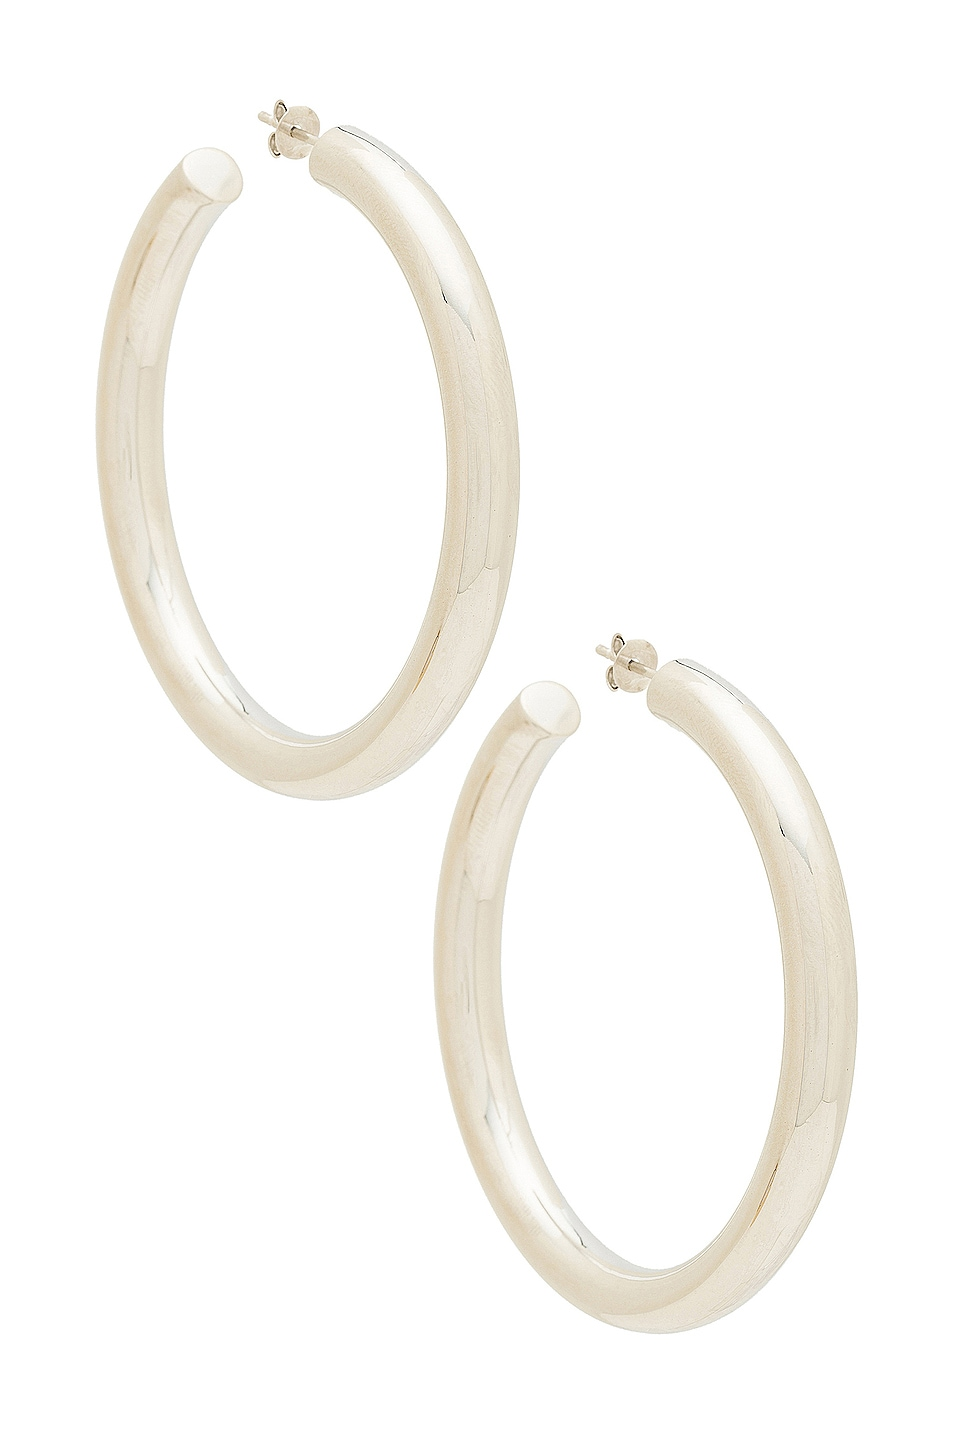 The M Jewelers NY The Thick Hoop Earrings in Silver